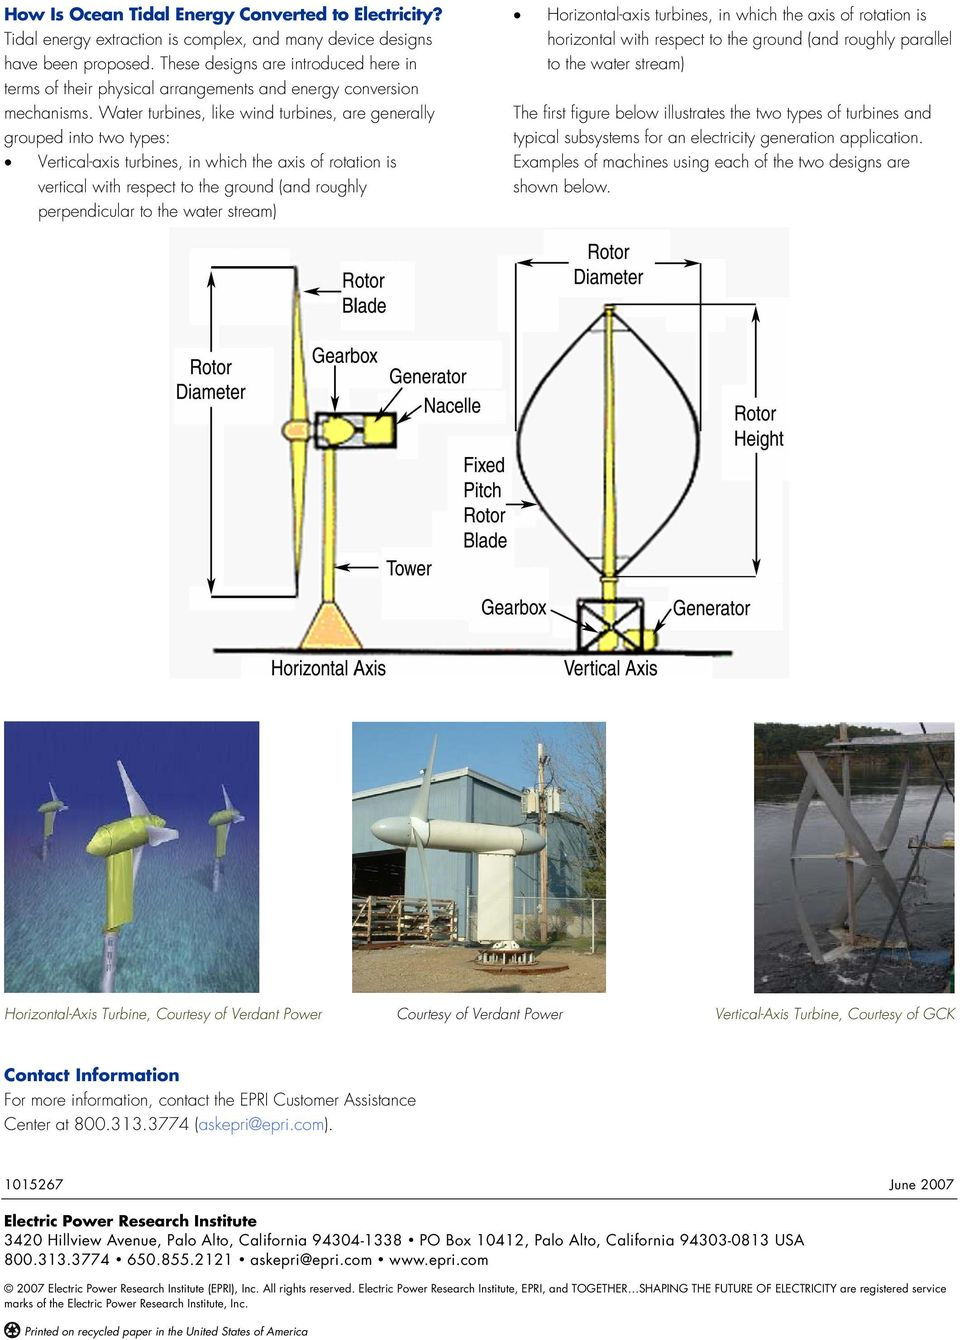 Water turbines, like wind turbines, are generally grouped into two types: Vertical-axis turbines, in which the axis of rotation is vertical with respect to the ground (and roughly perpendicular to